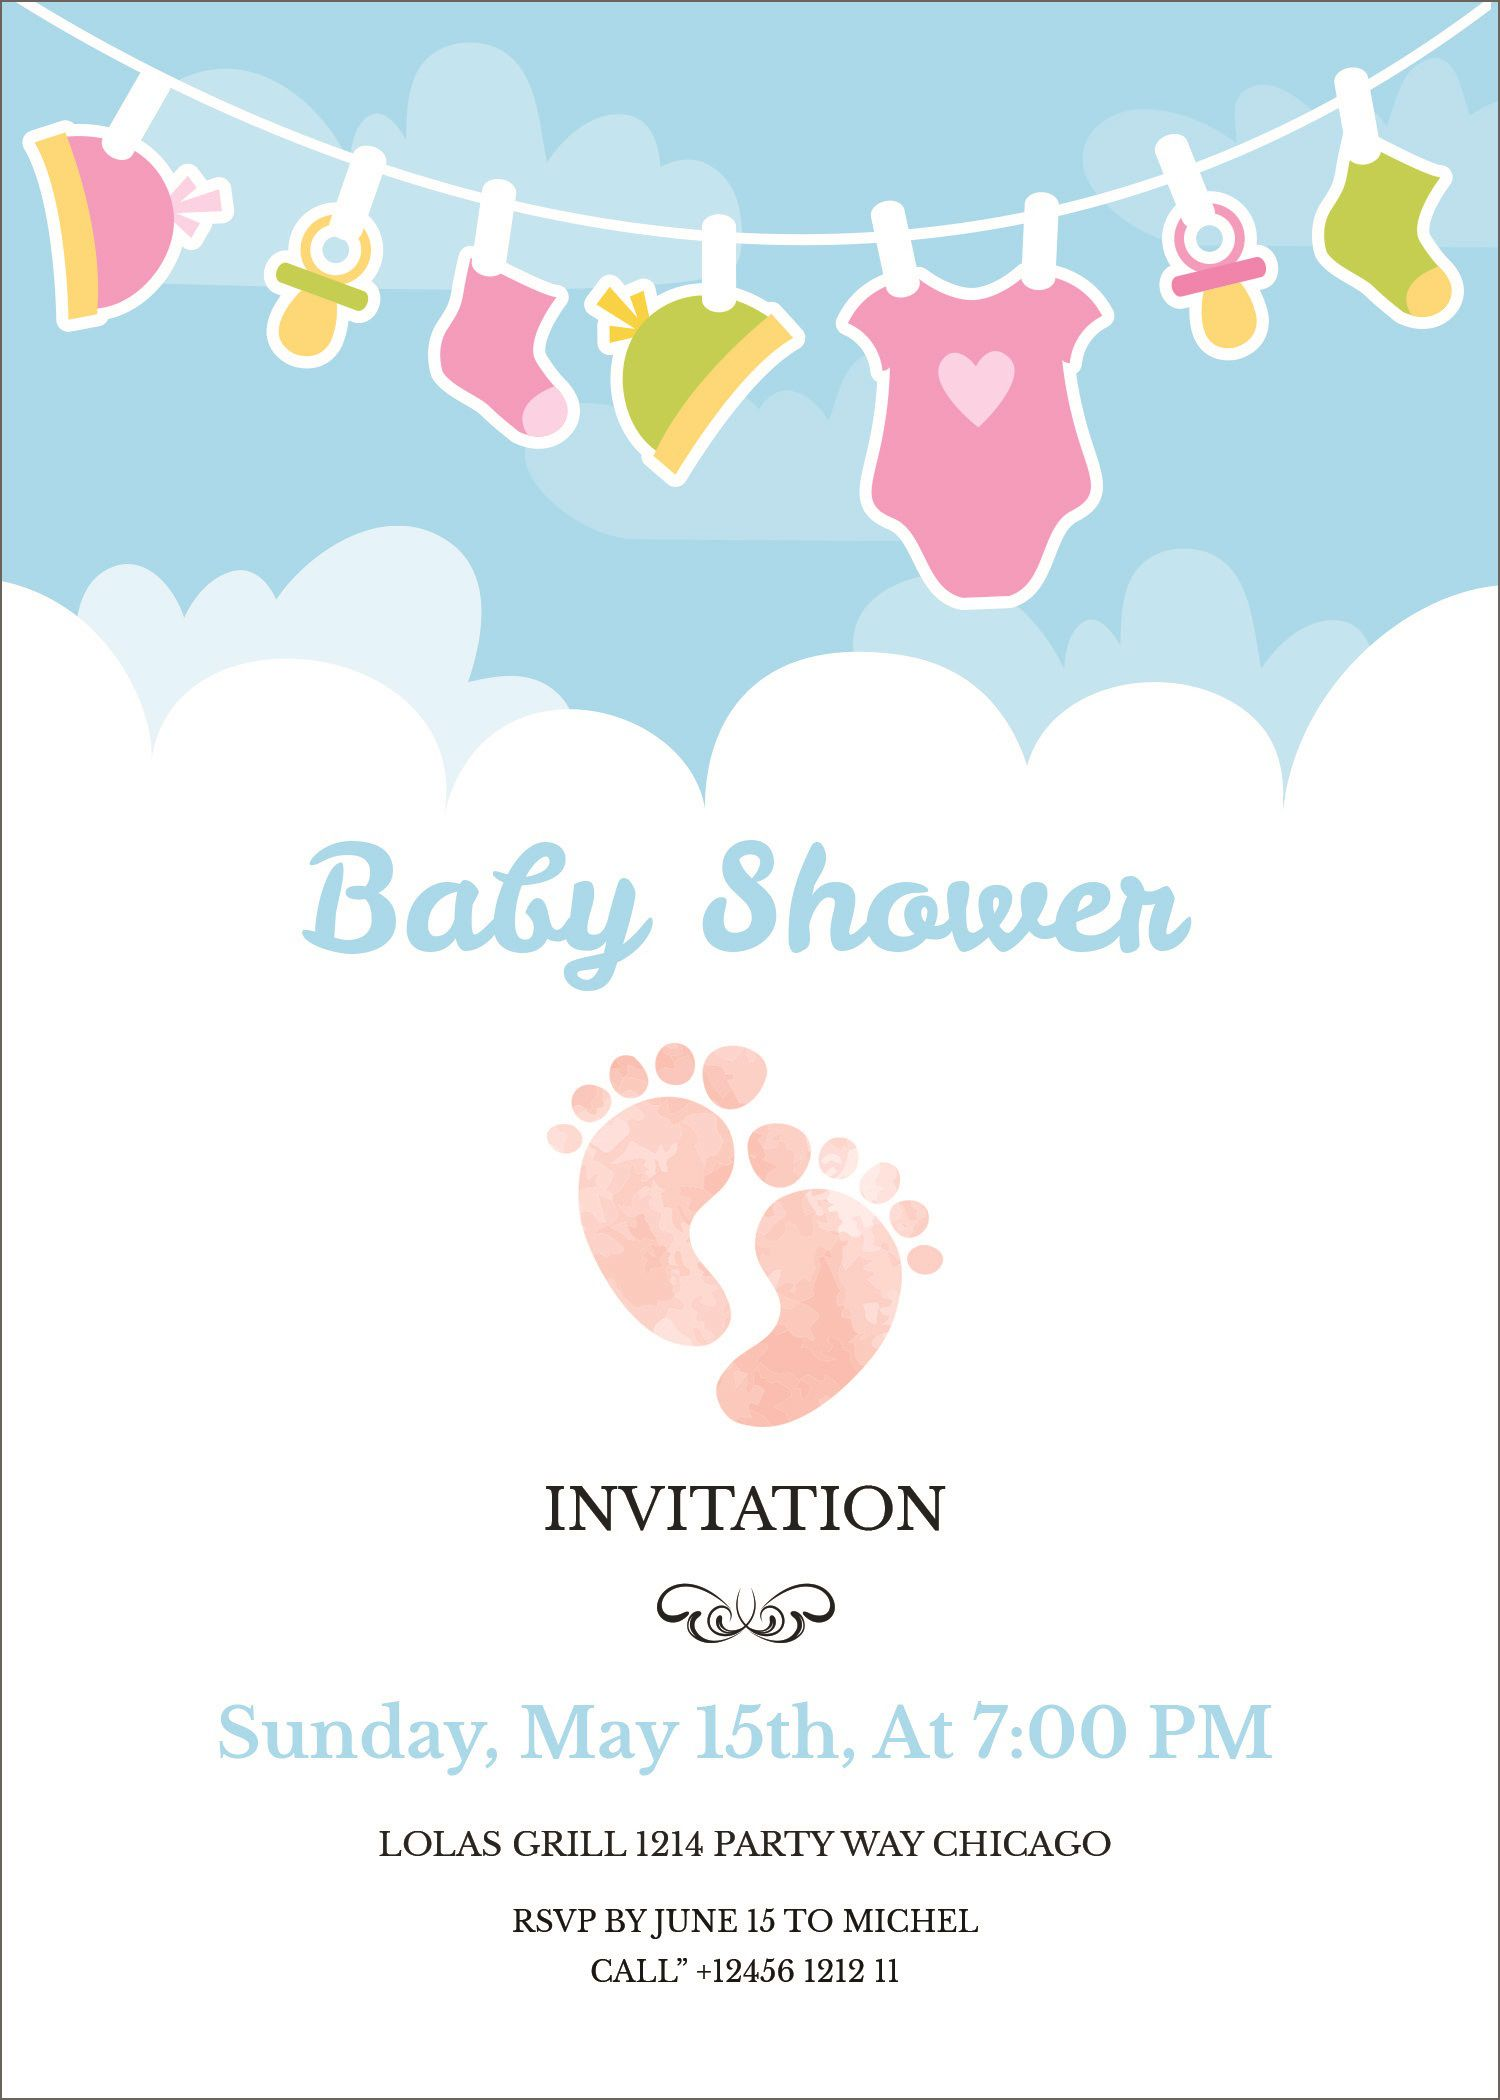 004 Awful Baby Shower Invitation Card Template Free Download Design  IndianFull